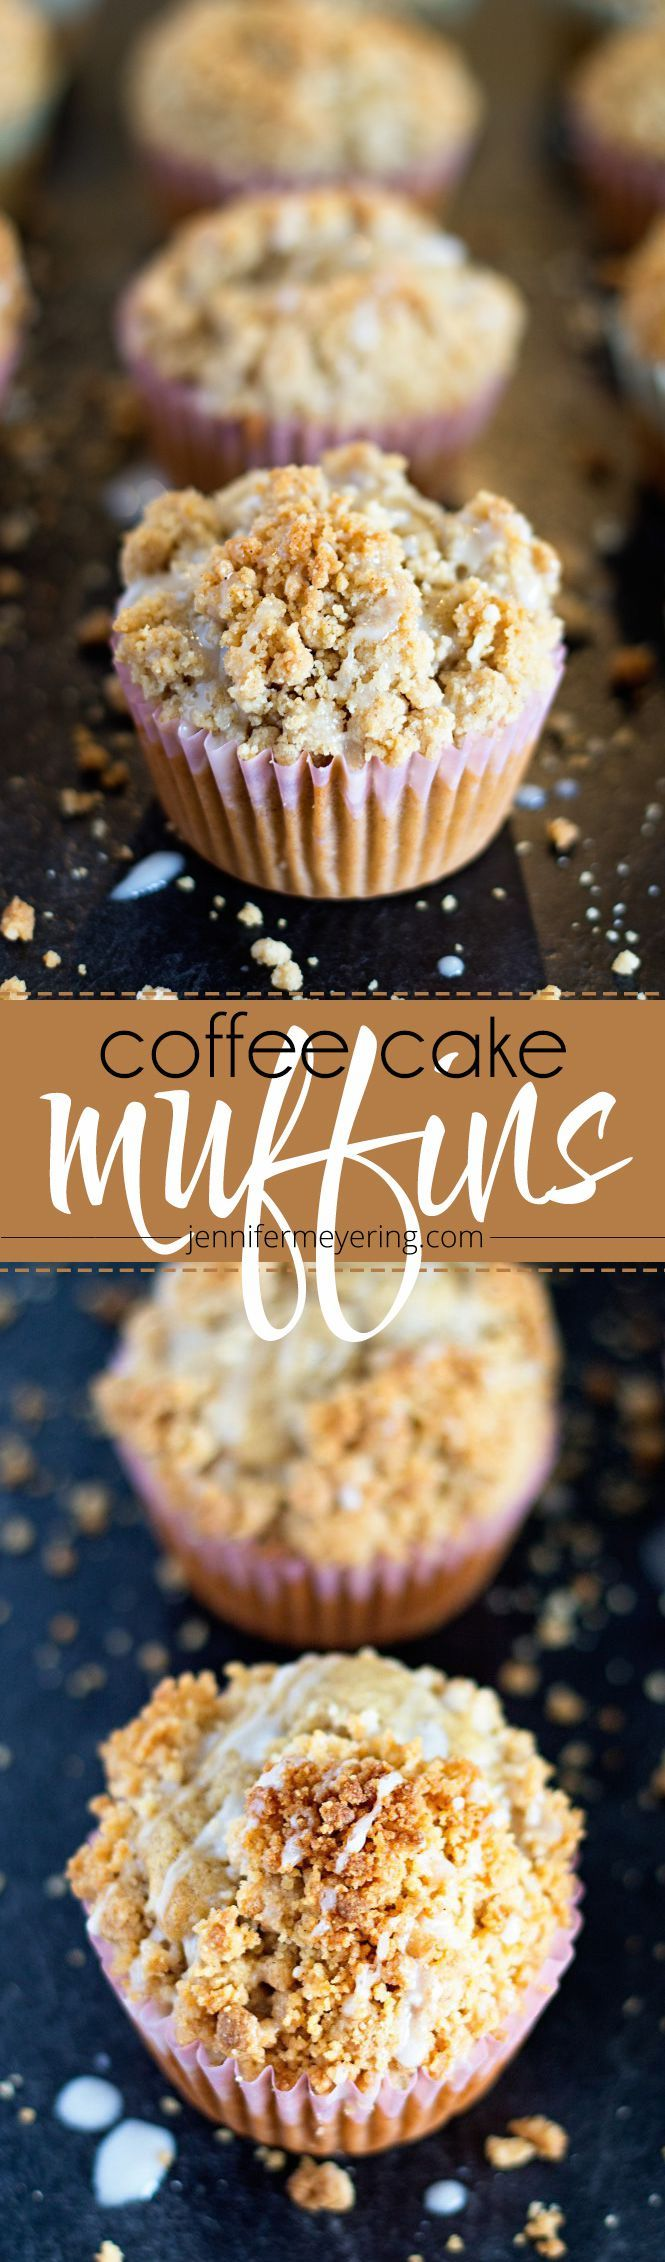 These Coffee Cake Muffins look easy enough and delicious! A fun idea for brunch or breakfast.